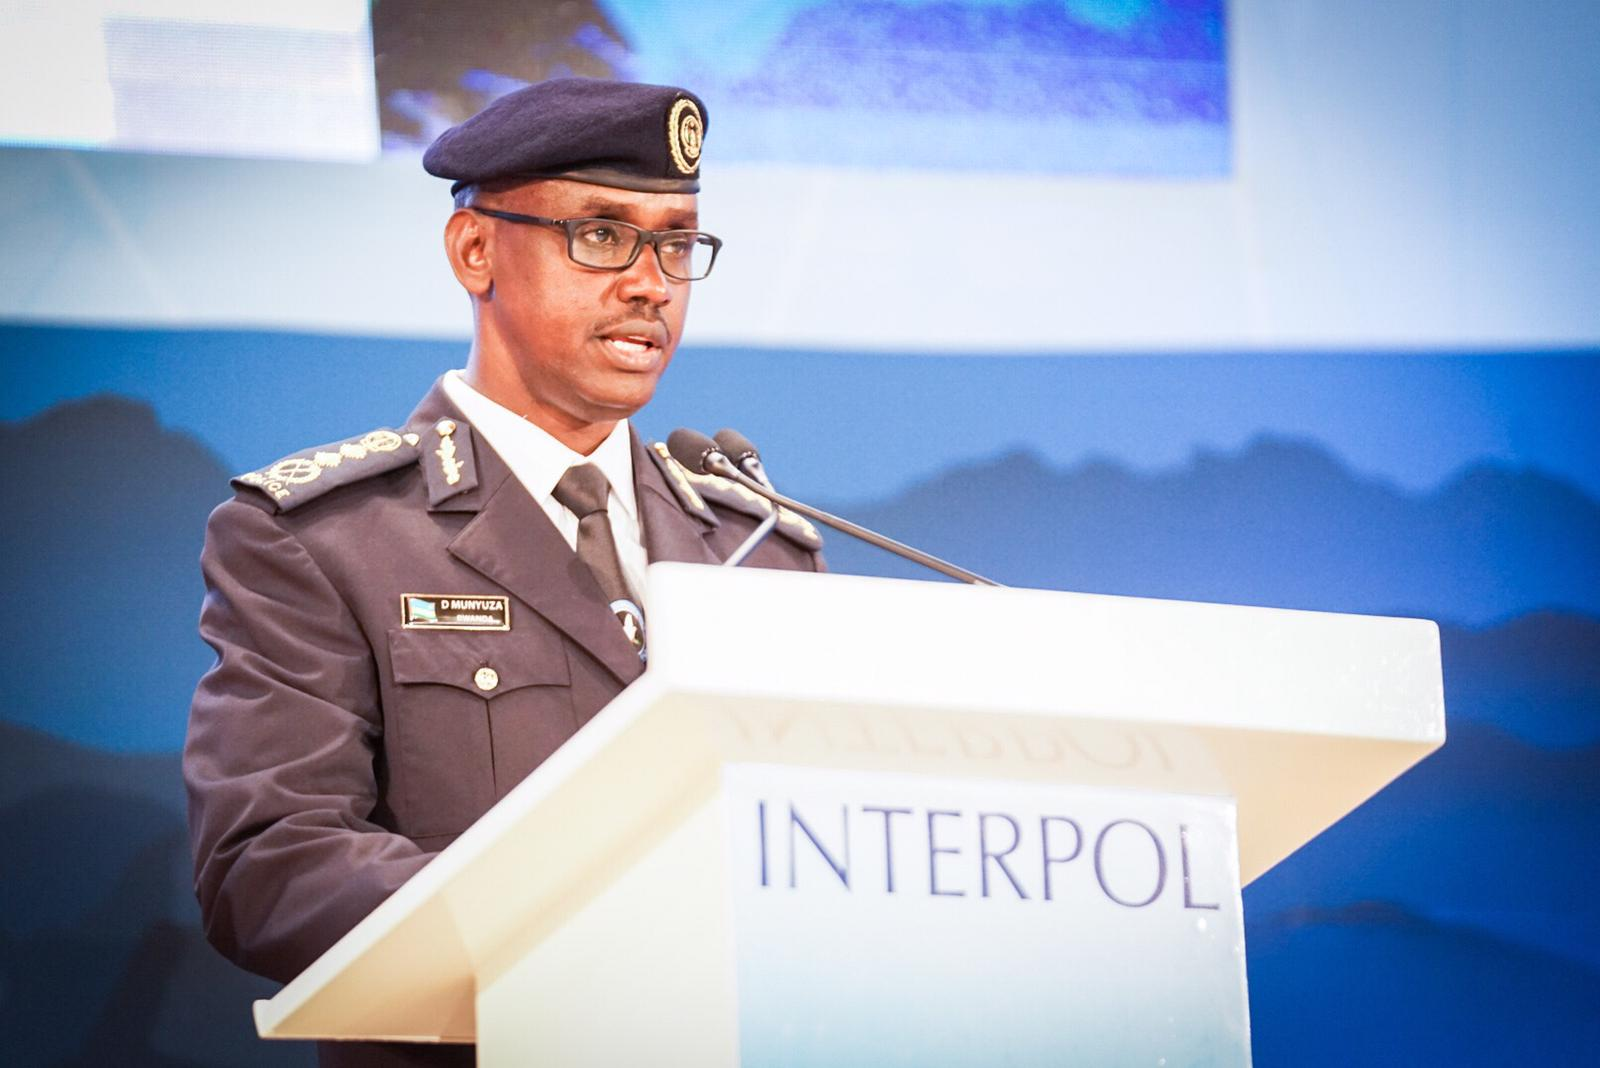 Inspector General of the Rwanda National Police Dan Munyuza addressing delegates.